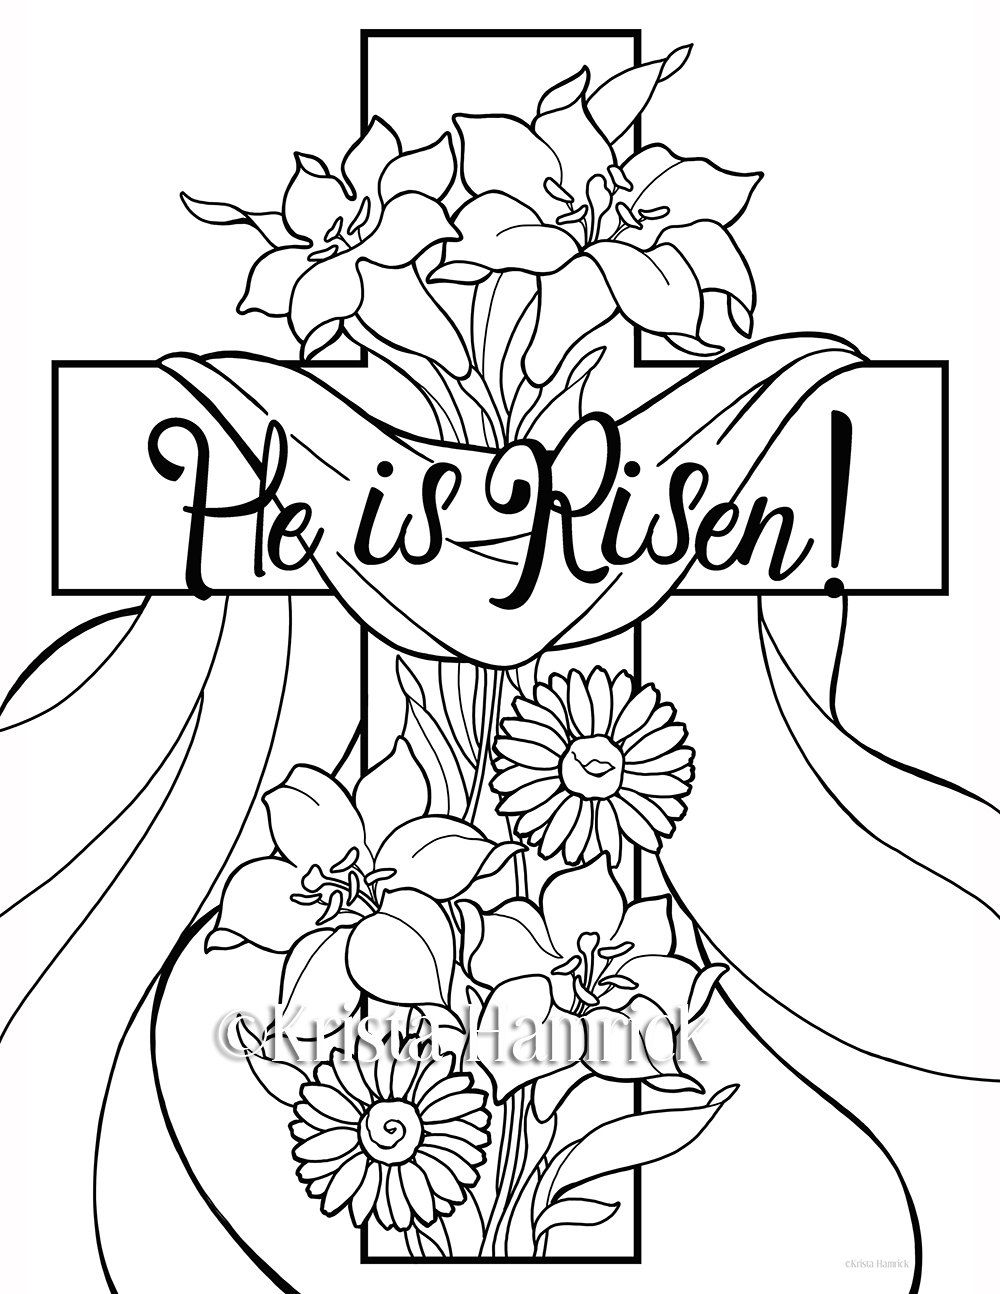 He is Risen! 2 Easter coloring pages for children Easter